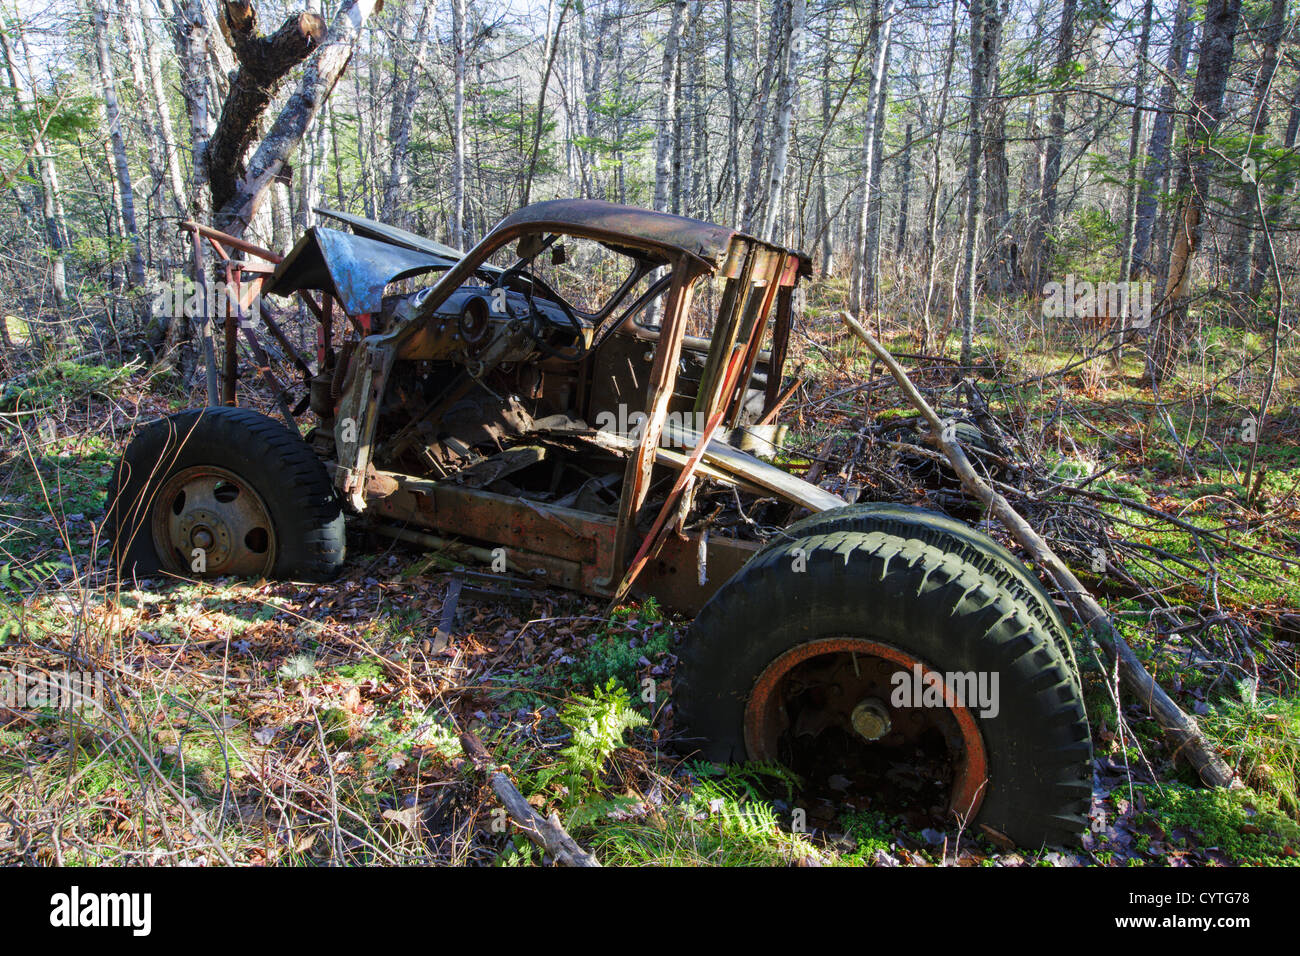 Abandoned 1950s Chevy in forest near Elbow Pond in Woodstock, New Hampshire USA - Stock Image